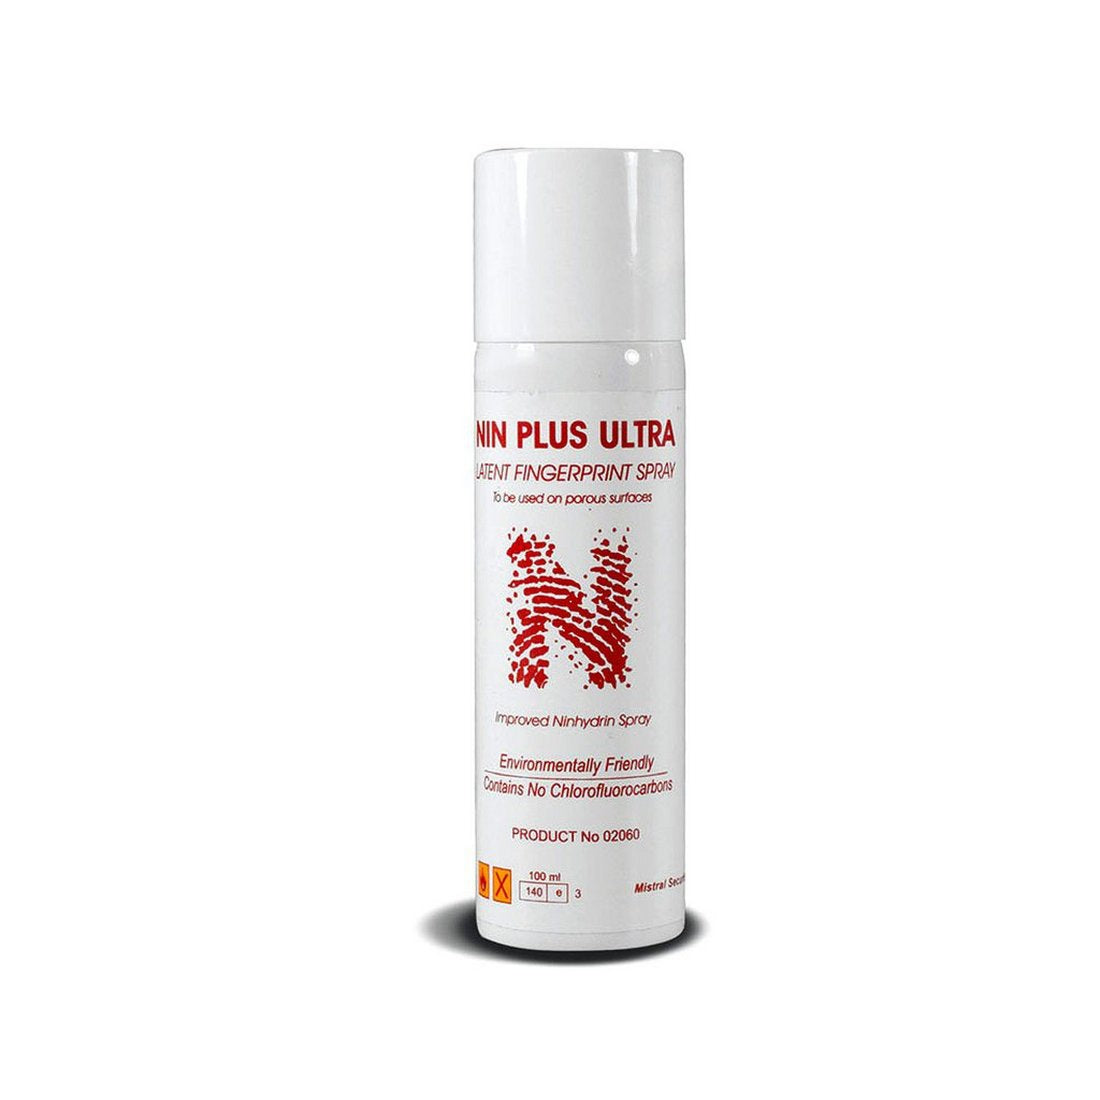 Mistral 02067 Nin + (300ml) Fingerprints Detection Forensic Aerosol